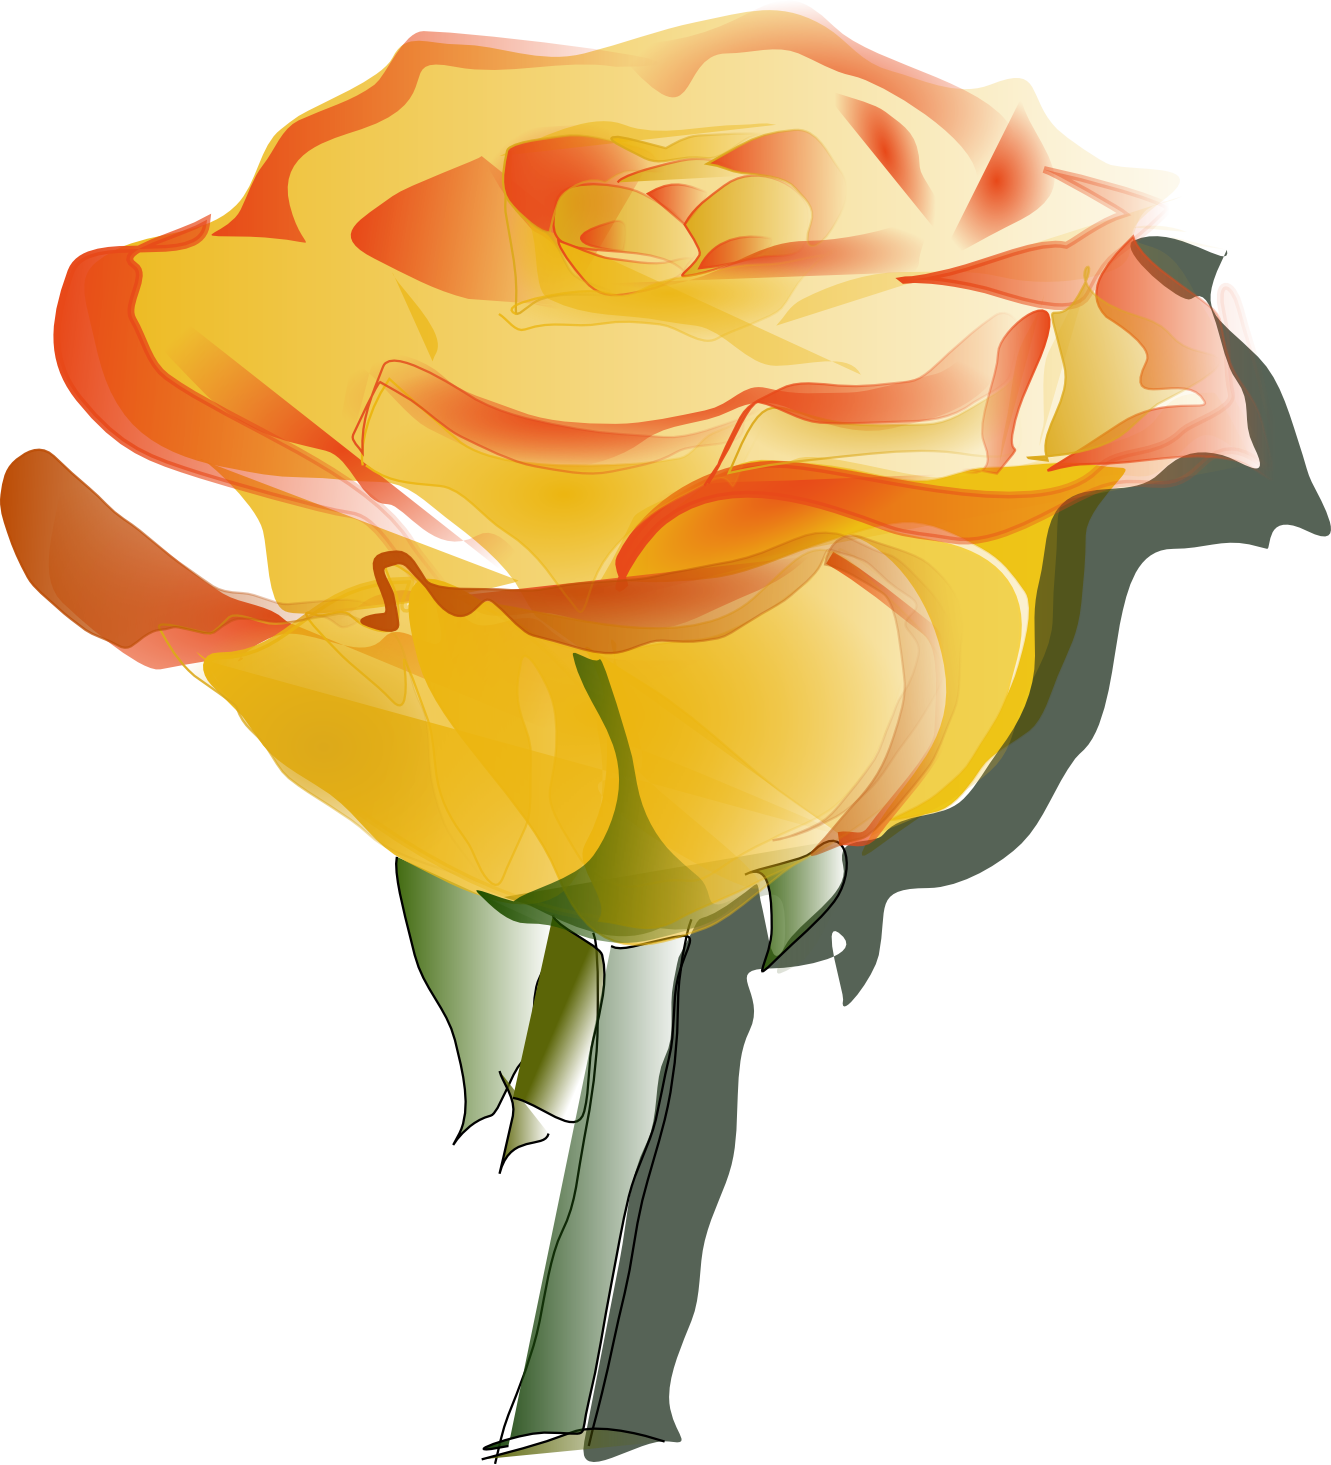 animated clip art roses - photo #12